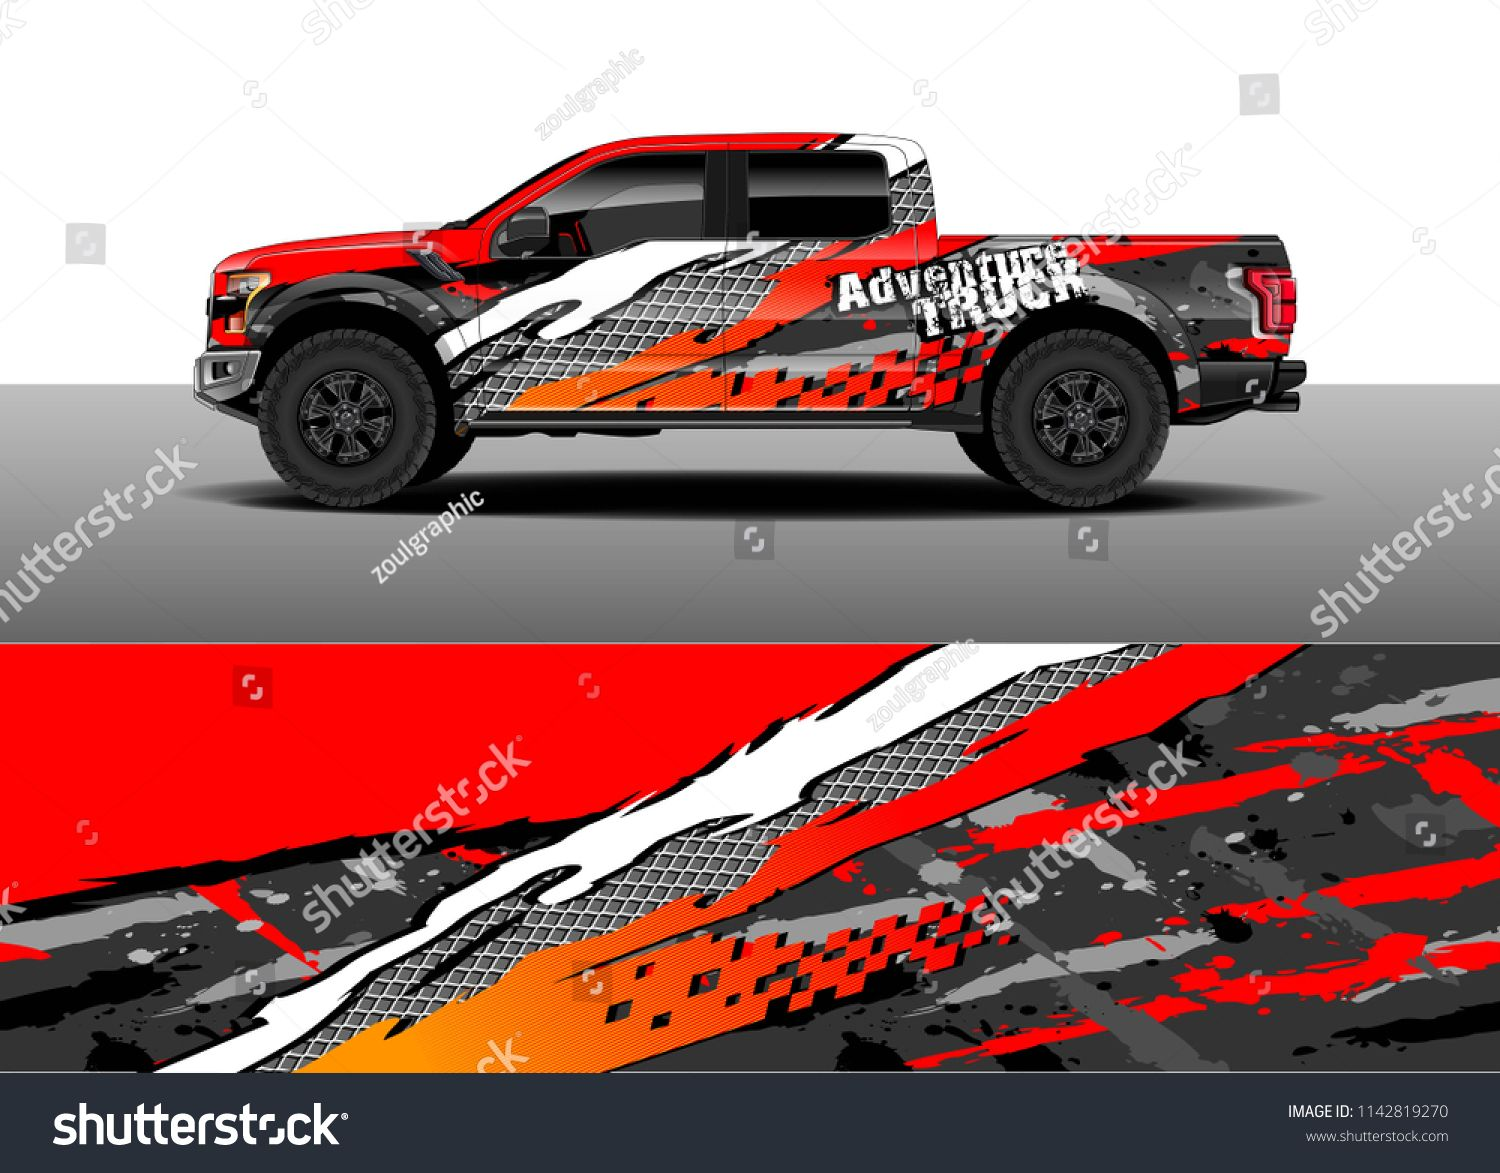 Truck and vehicle graphic decal designs car wrap vector graphic abstract stripe designs for advertisement race adventure and livery car